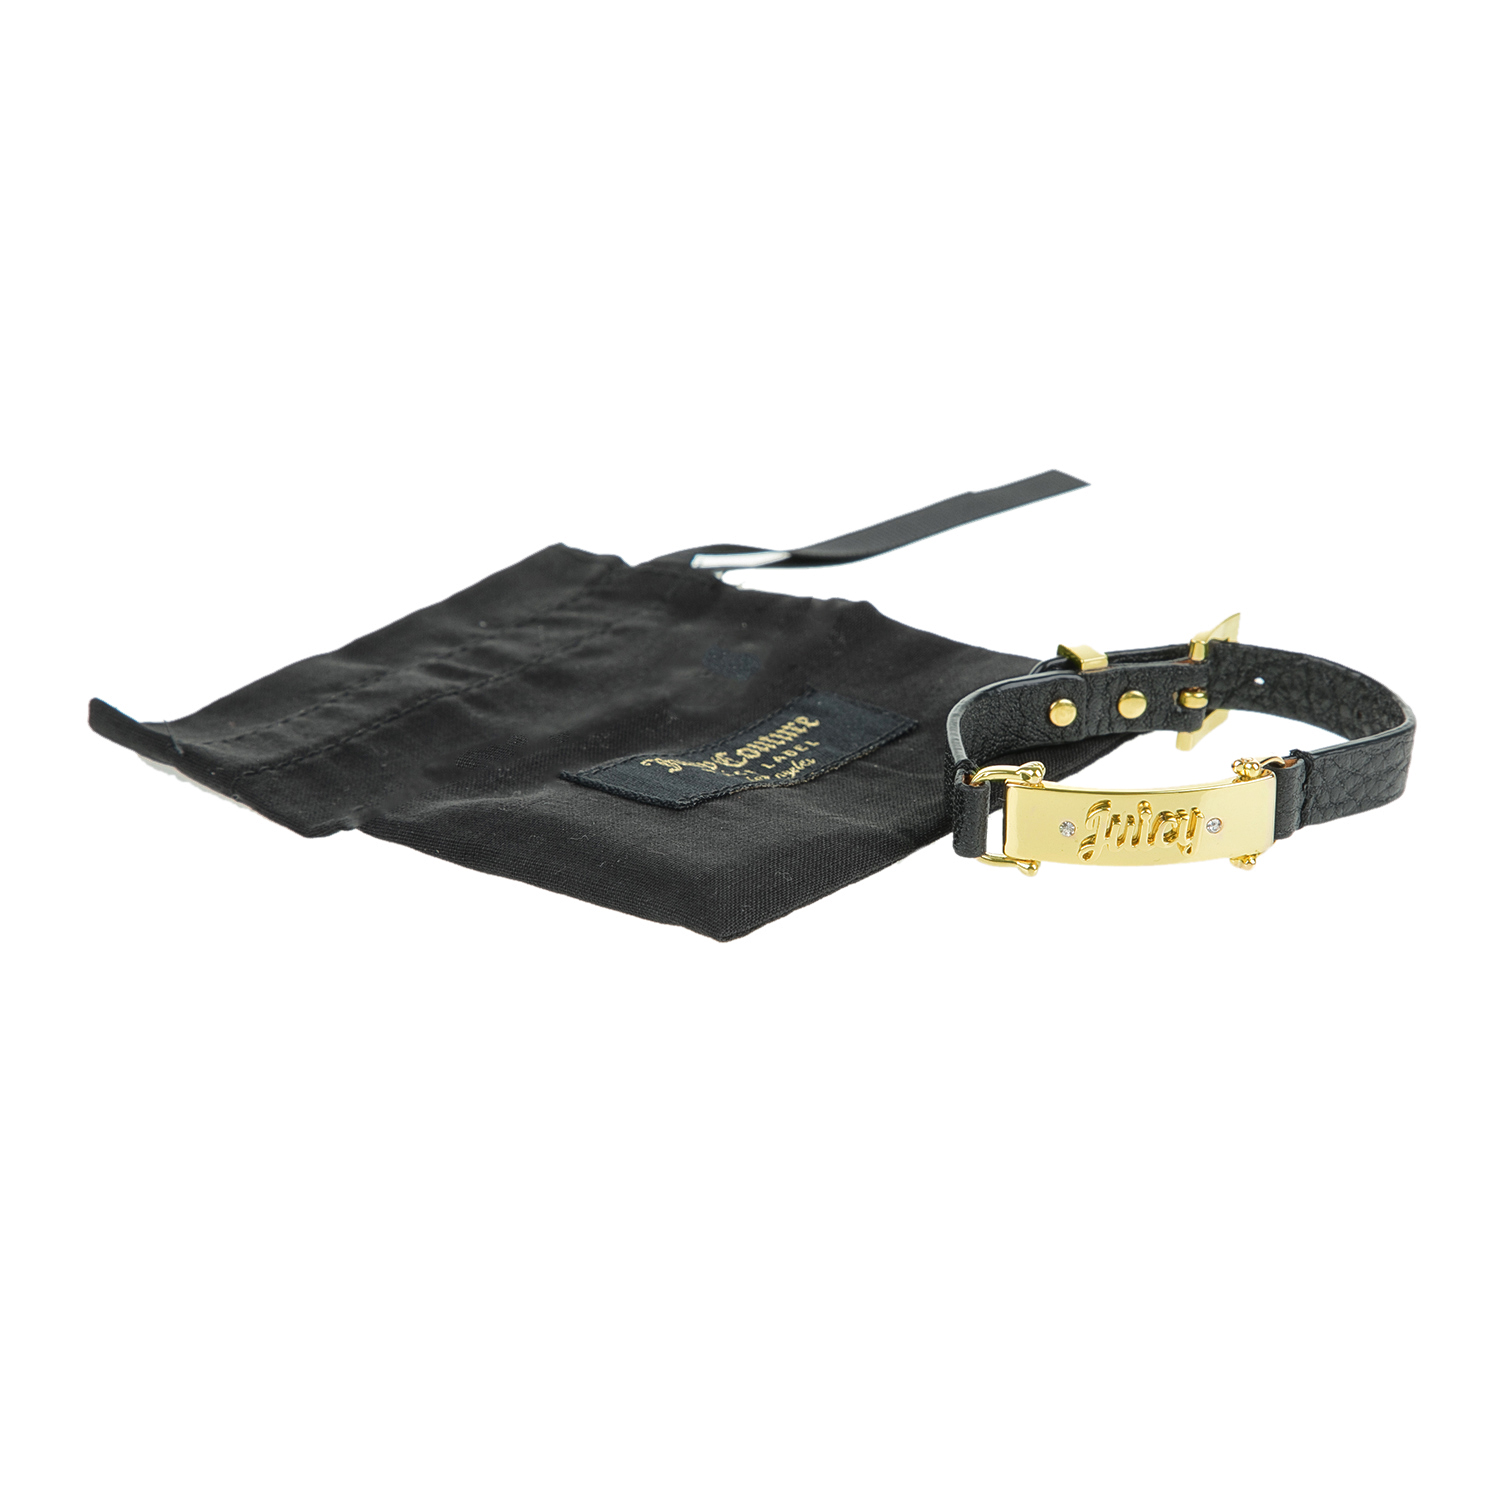 fa5cd85ff2 JUICY COUTURE - Γυναικείο Βραχιόλι JUICY COUTURE BAR LEATHER ...